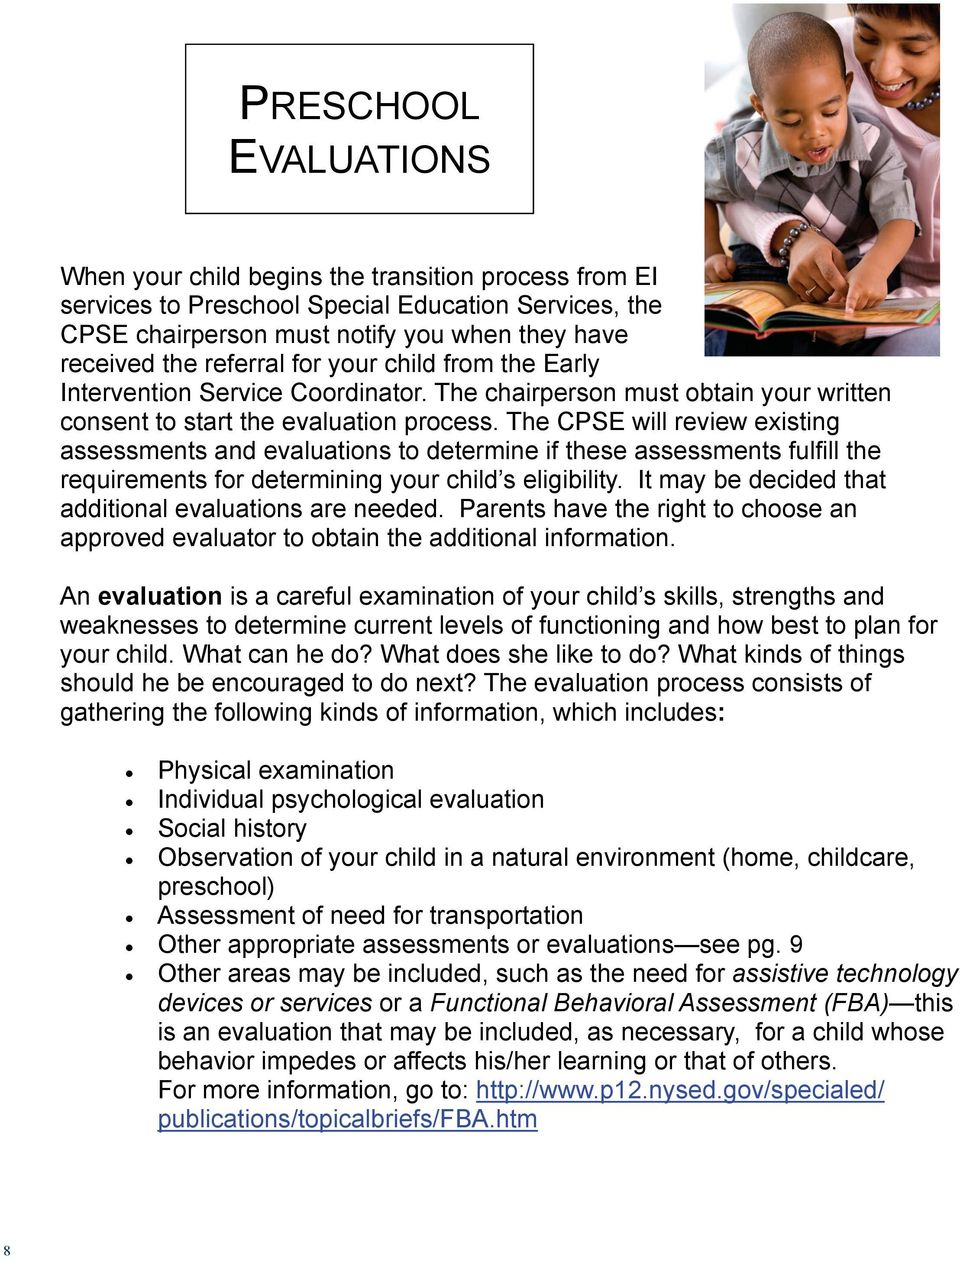 The CPSE will review existing assessments and evaluations to determine if these assessments fulfill the requirements for determining your child s eligibility.